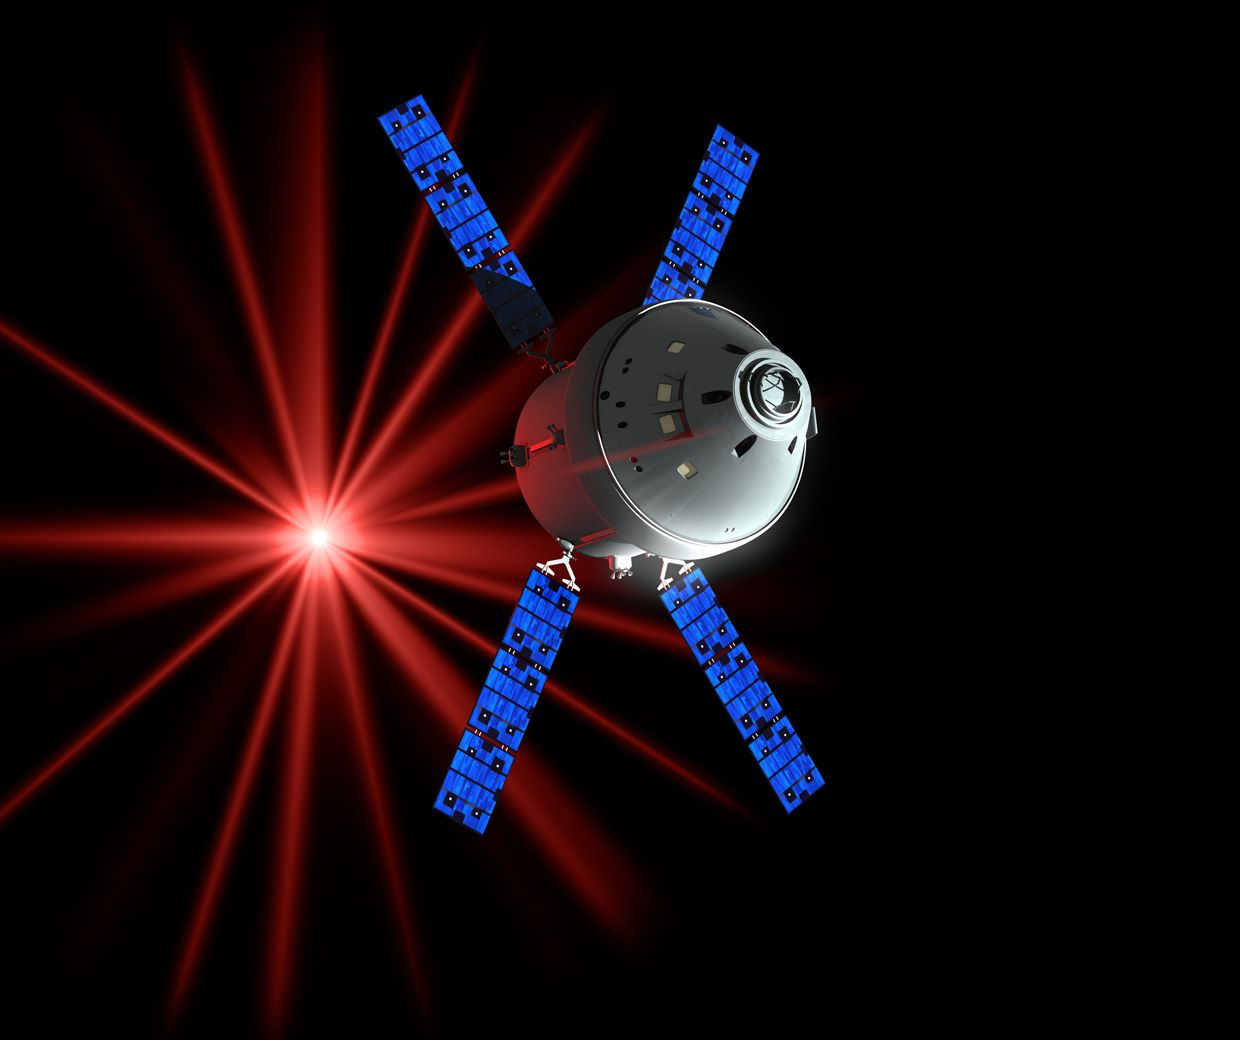 Infrared lasers will allow Orion to beam ultrahigh-definition video back to Earth, as shown in this artist's rendering.